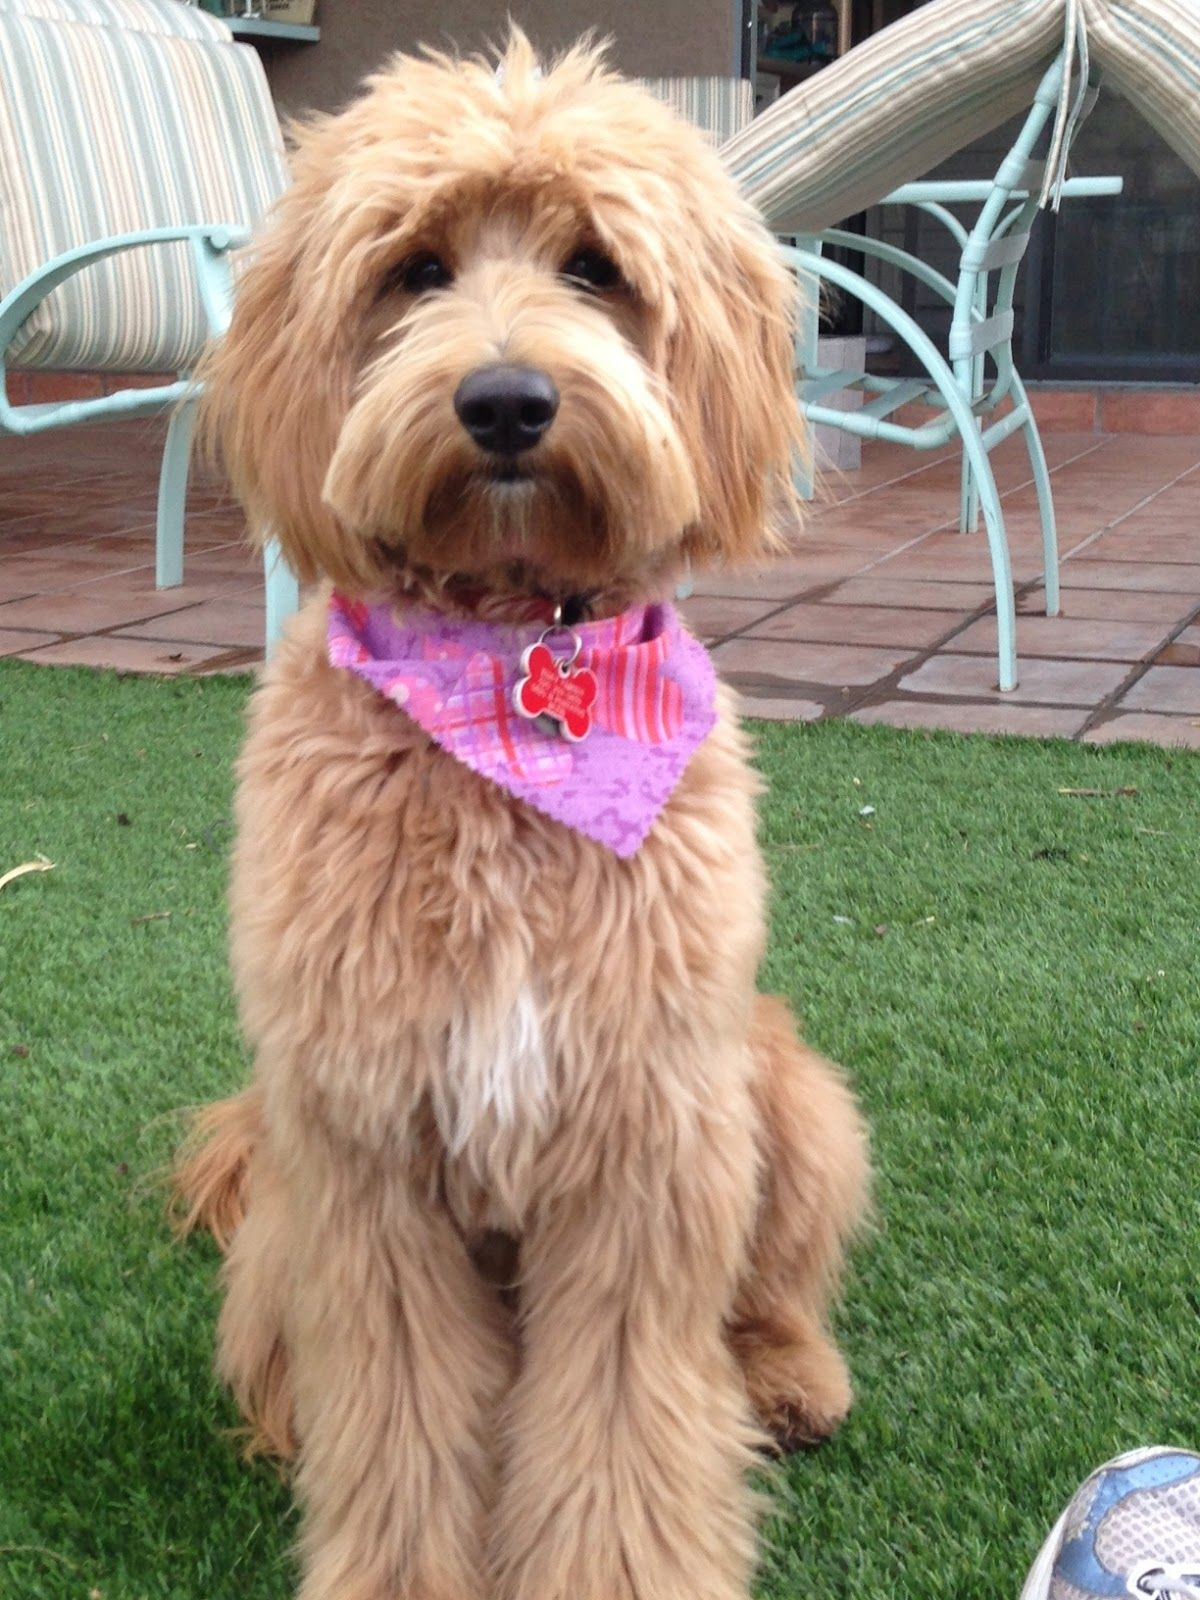 About The Breed First Bred In Australia In The 1980 S Labradoodles Are Hybrid Mix Labradoodle Grooming Goldendoodle Haircuts Australian Labradoodle Grooming